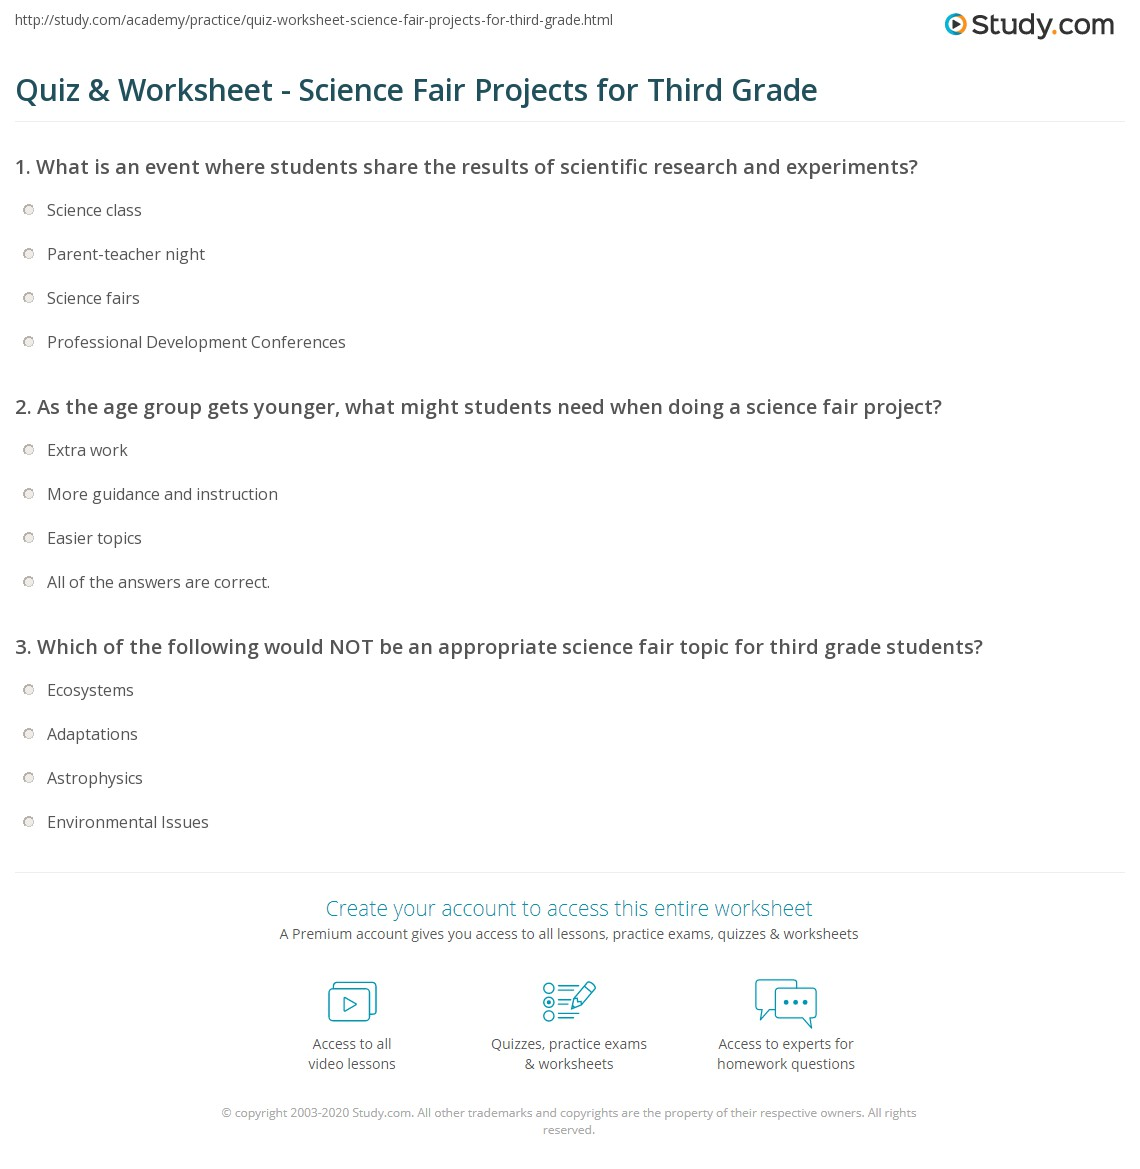 Quiz Worksheet Science Fair Projects For Third Grade